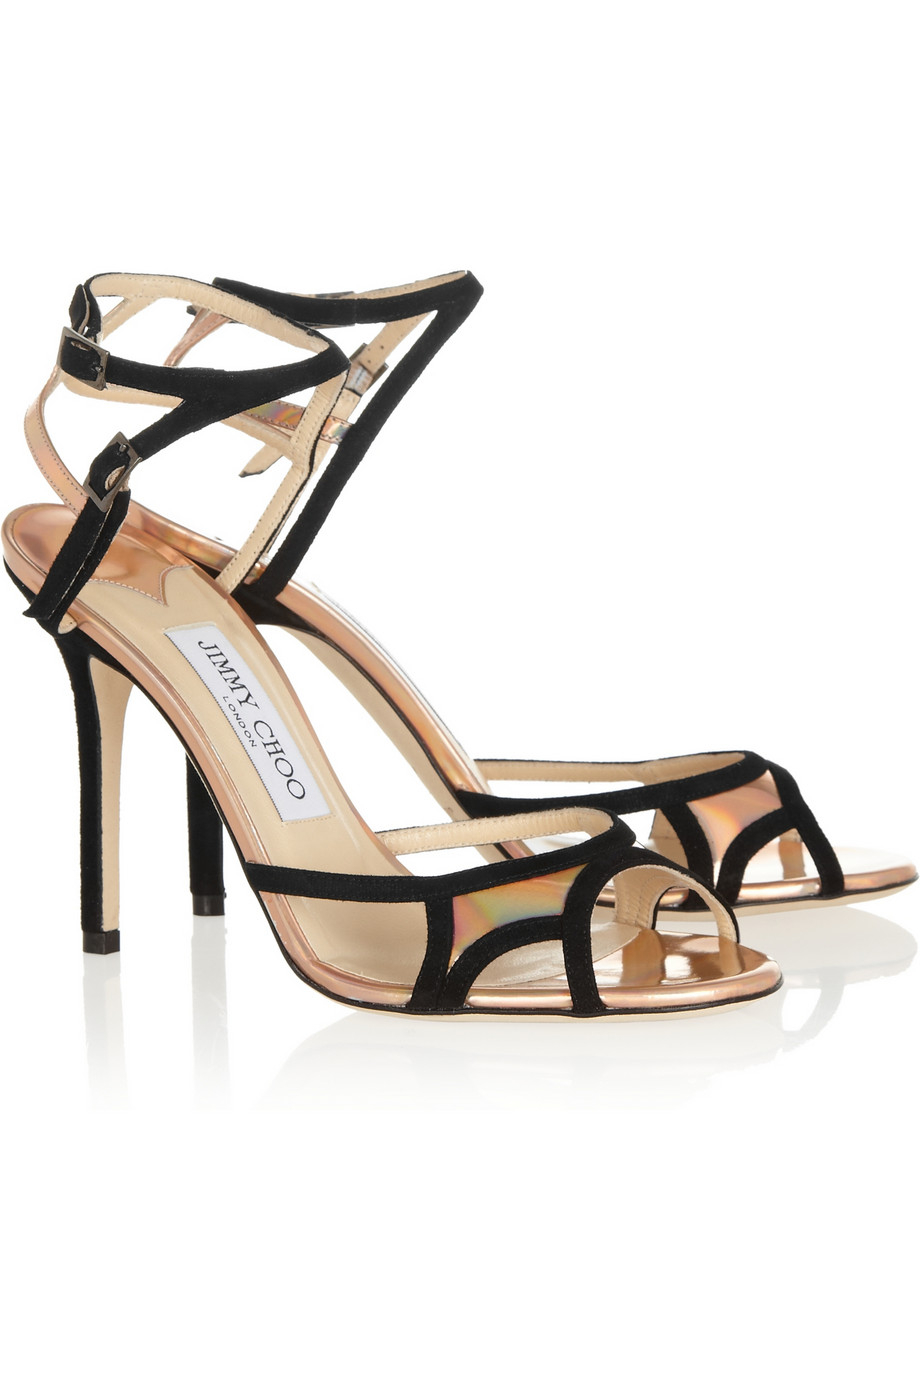 10685cc3f043 Lyst - Jimmy Choo Rocks Suede and Holographic Leather Sandals in Black